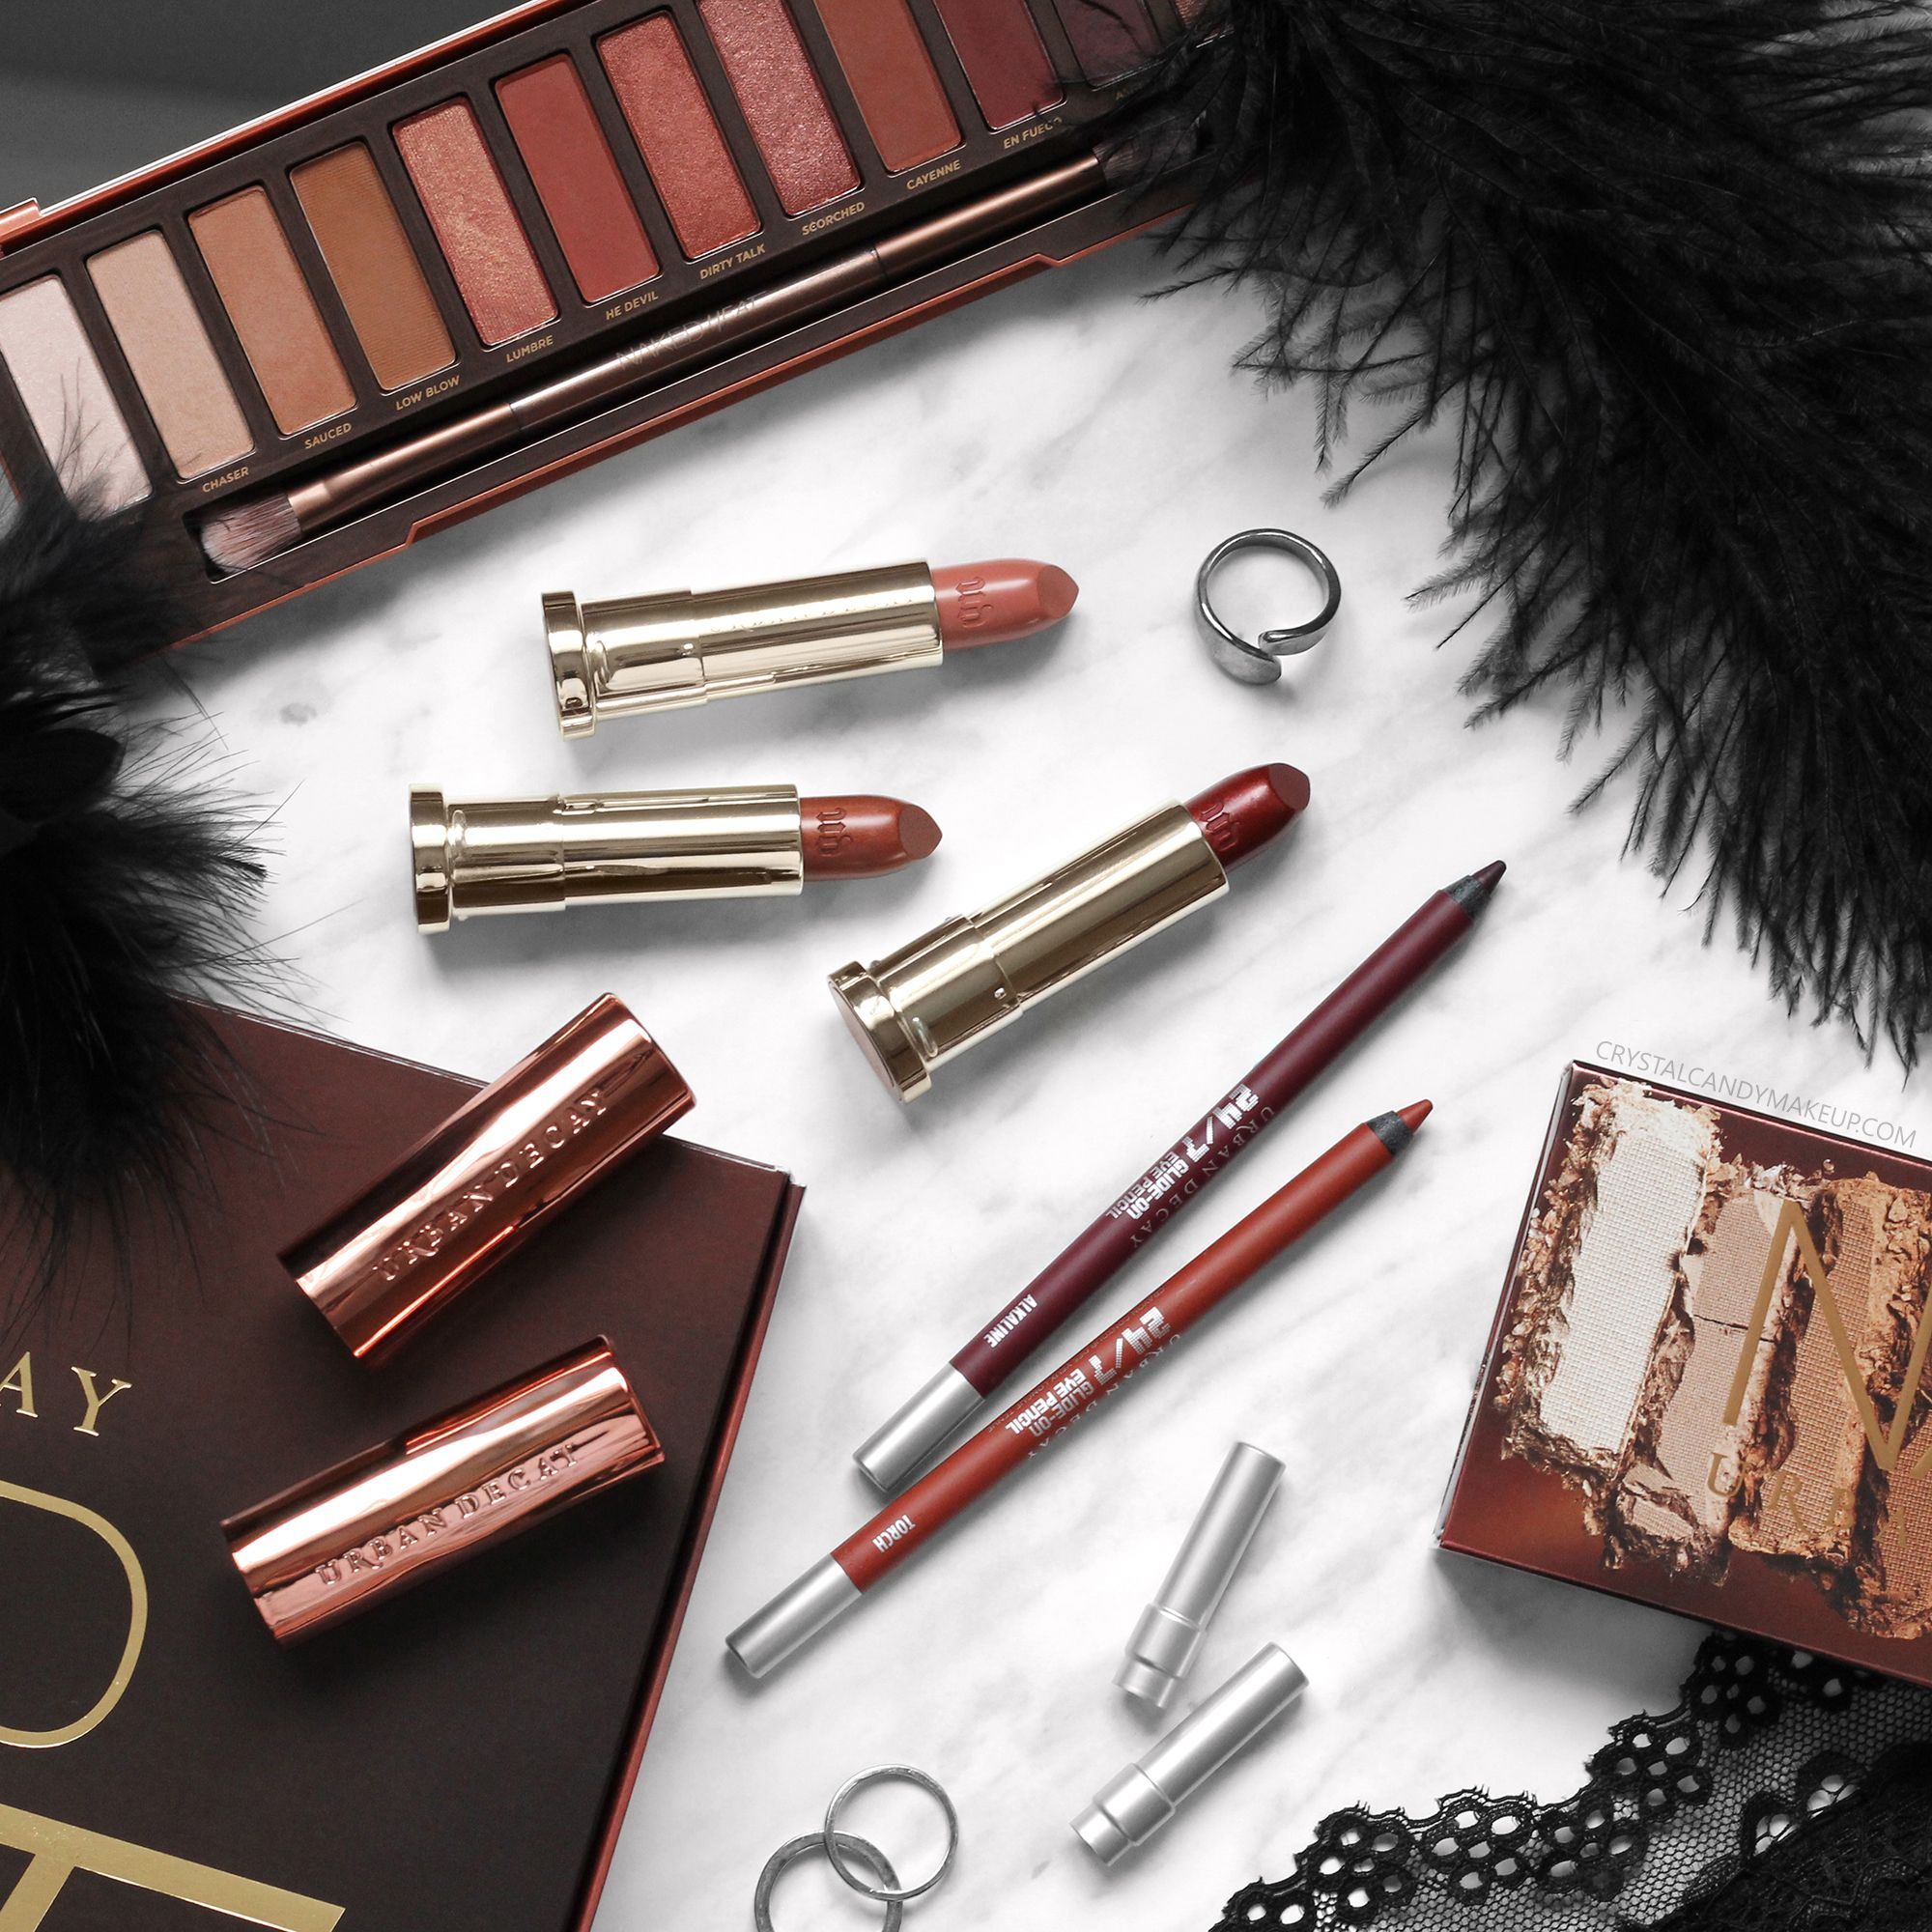 Urban Decay Naked Heat collection, review and swatches